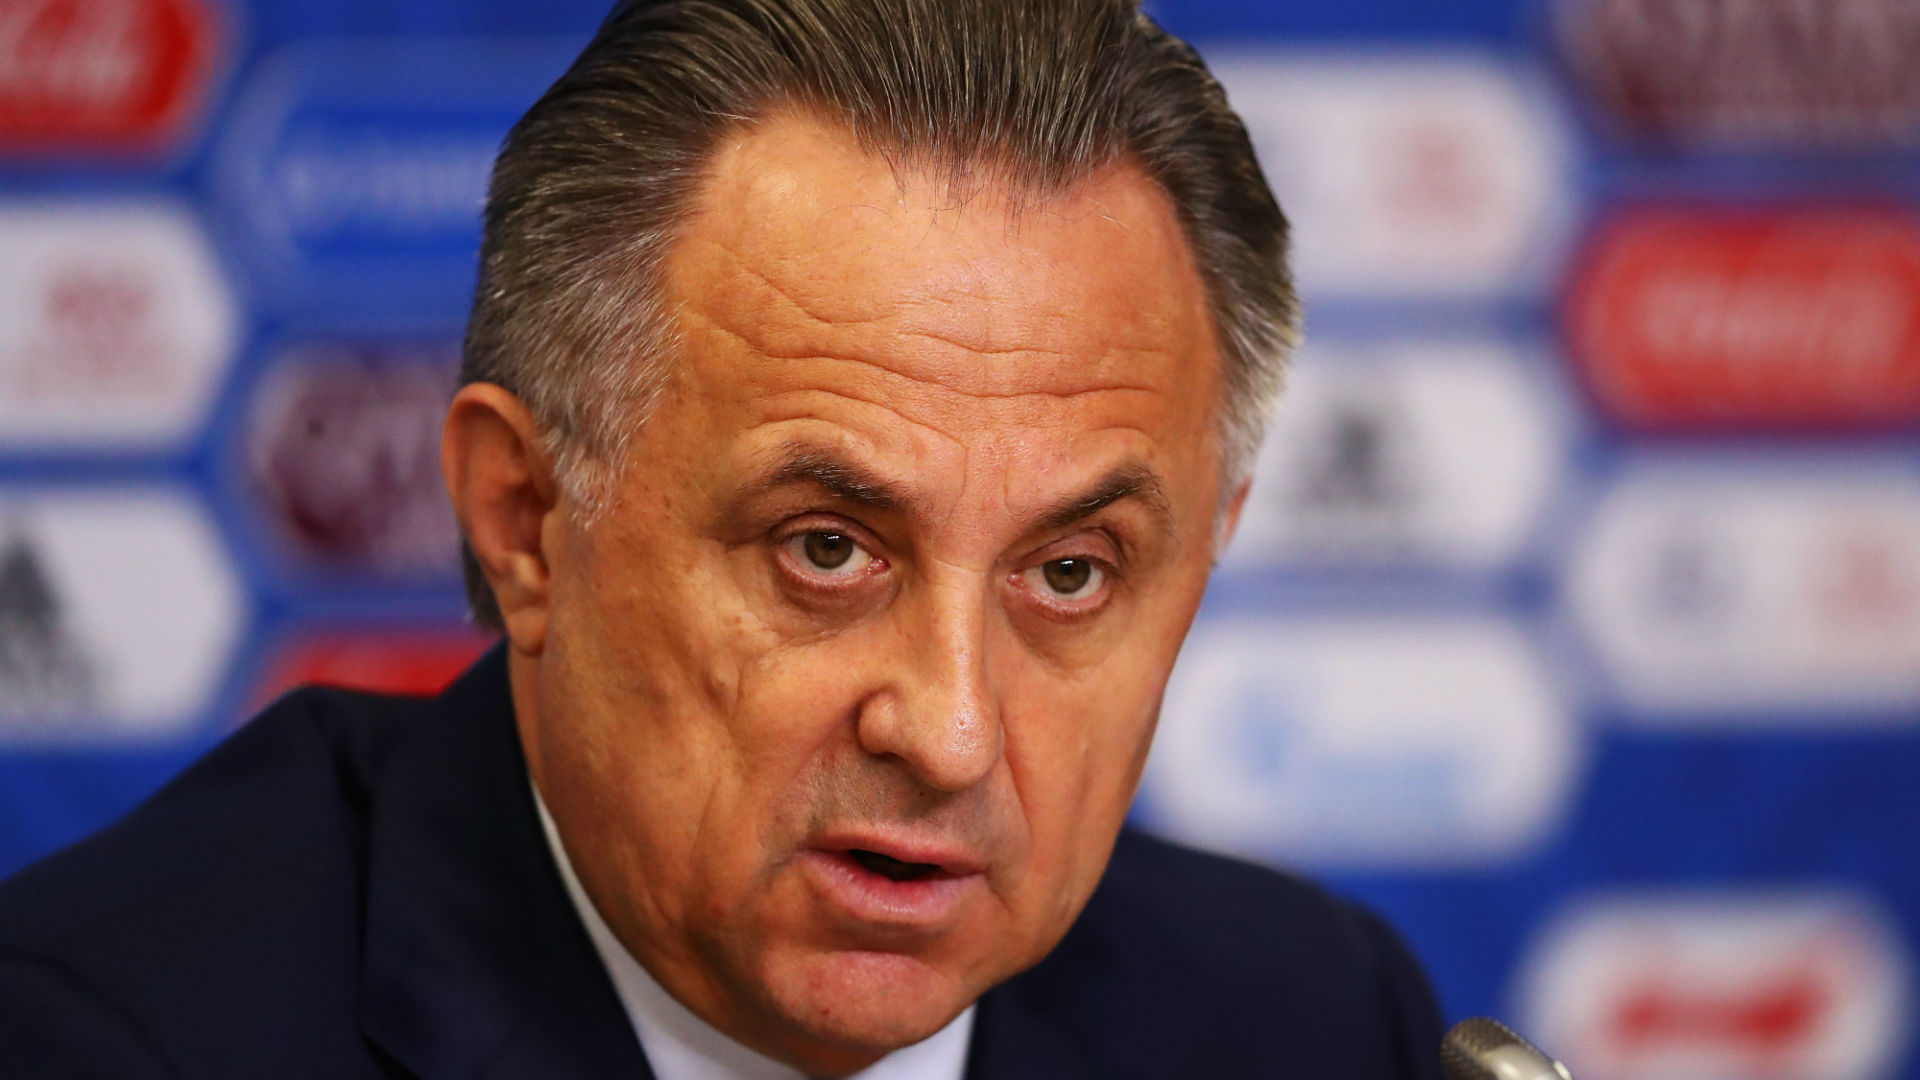 World Cup 2018 chief Mutko to fight doping ban but refuses to resign